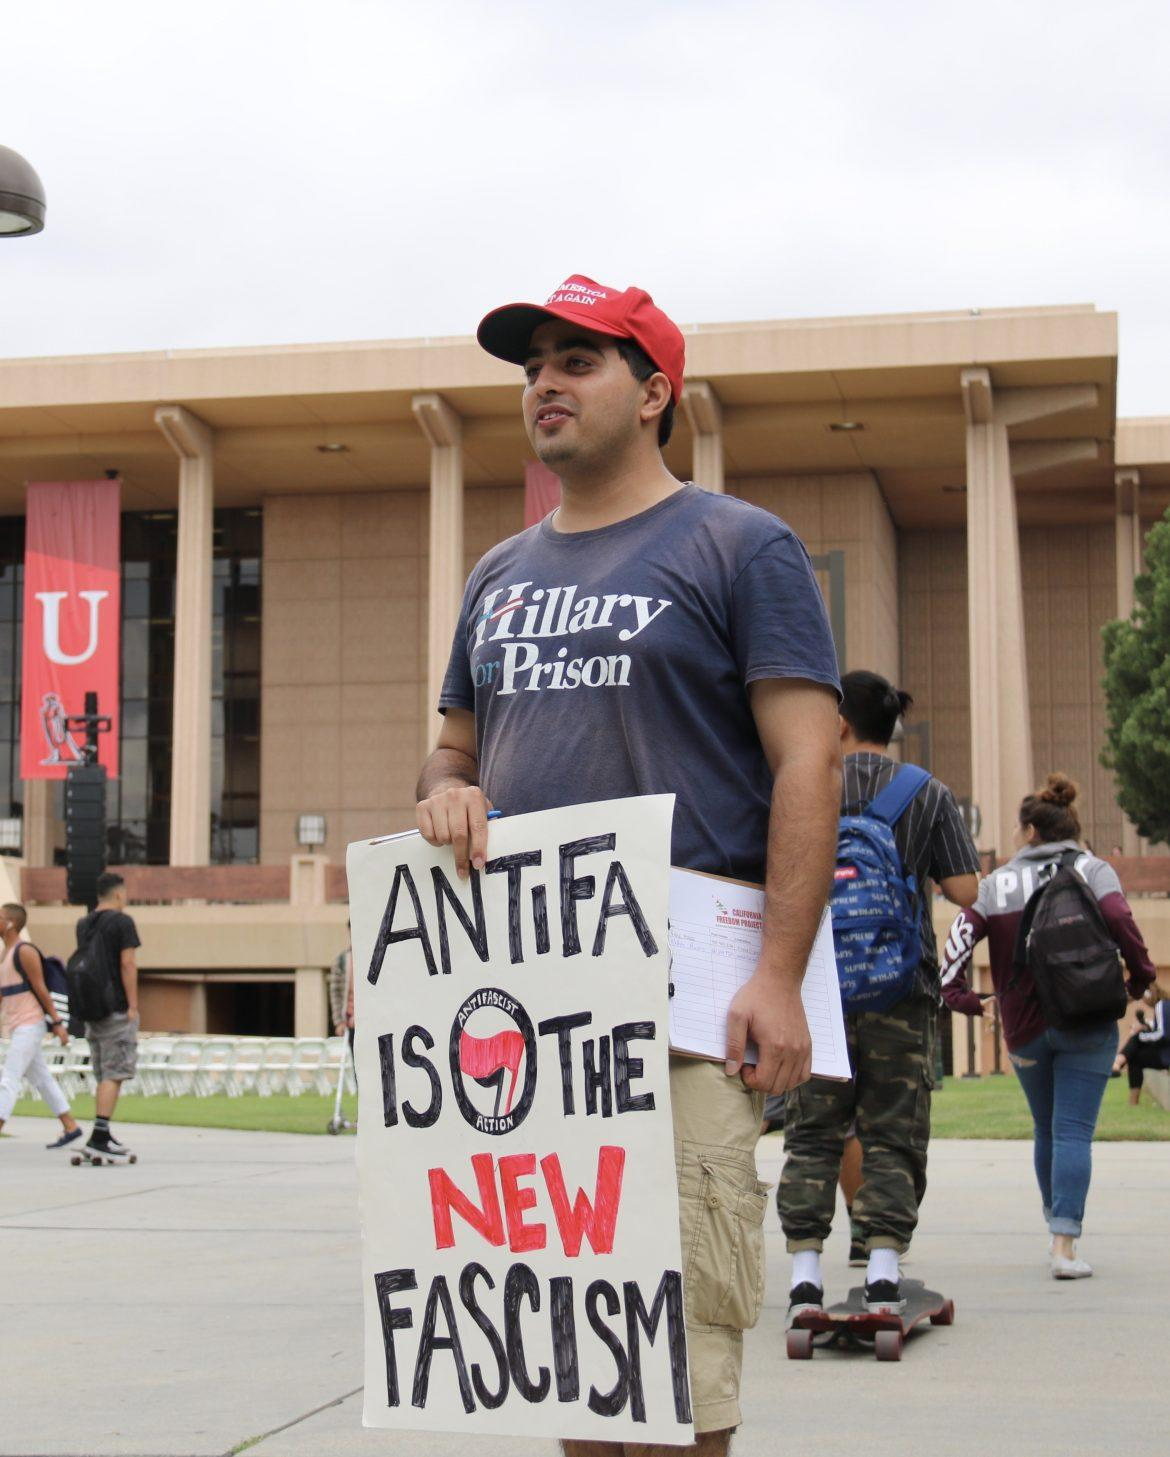 Man+pictured+on+the+Oviatt+lawn+wearing+a+shirt+that+says%2C+%22Hillary+for+Prison%22+he+is+holding+a+sign+up+that+says%2C+%22Antifa+is+the+new+facism%22